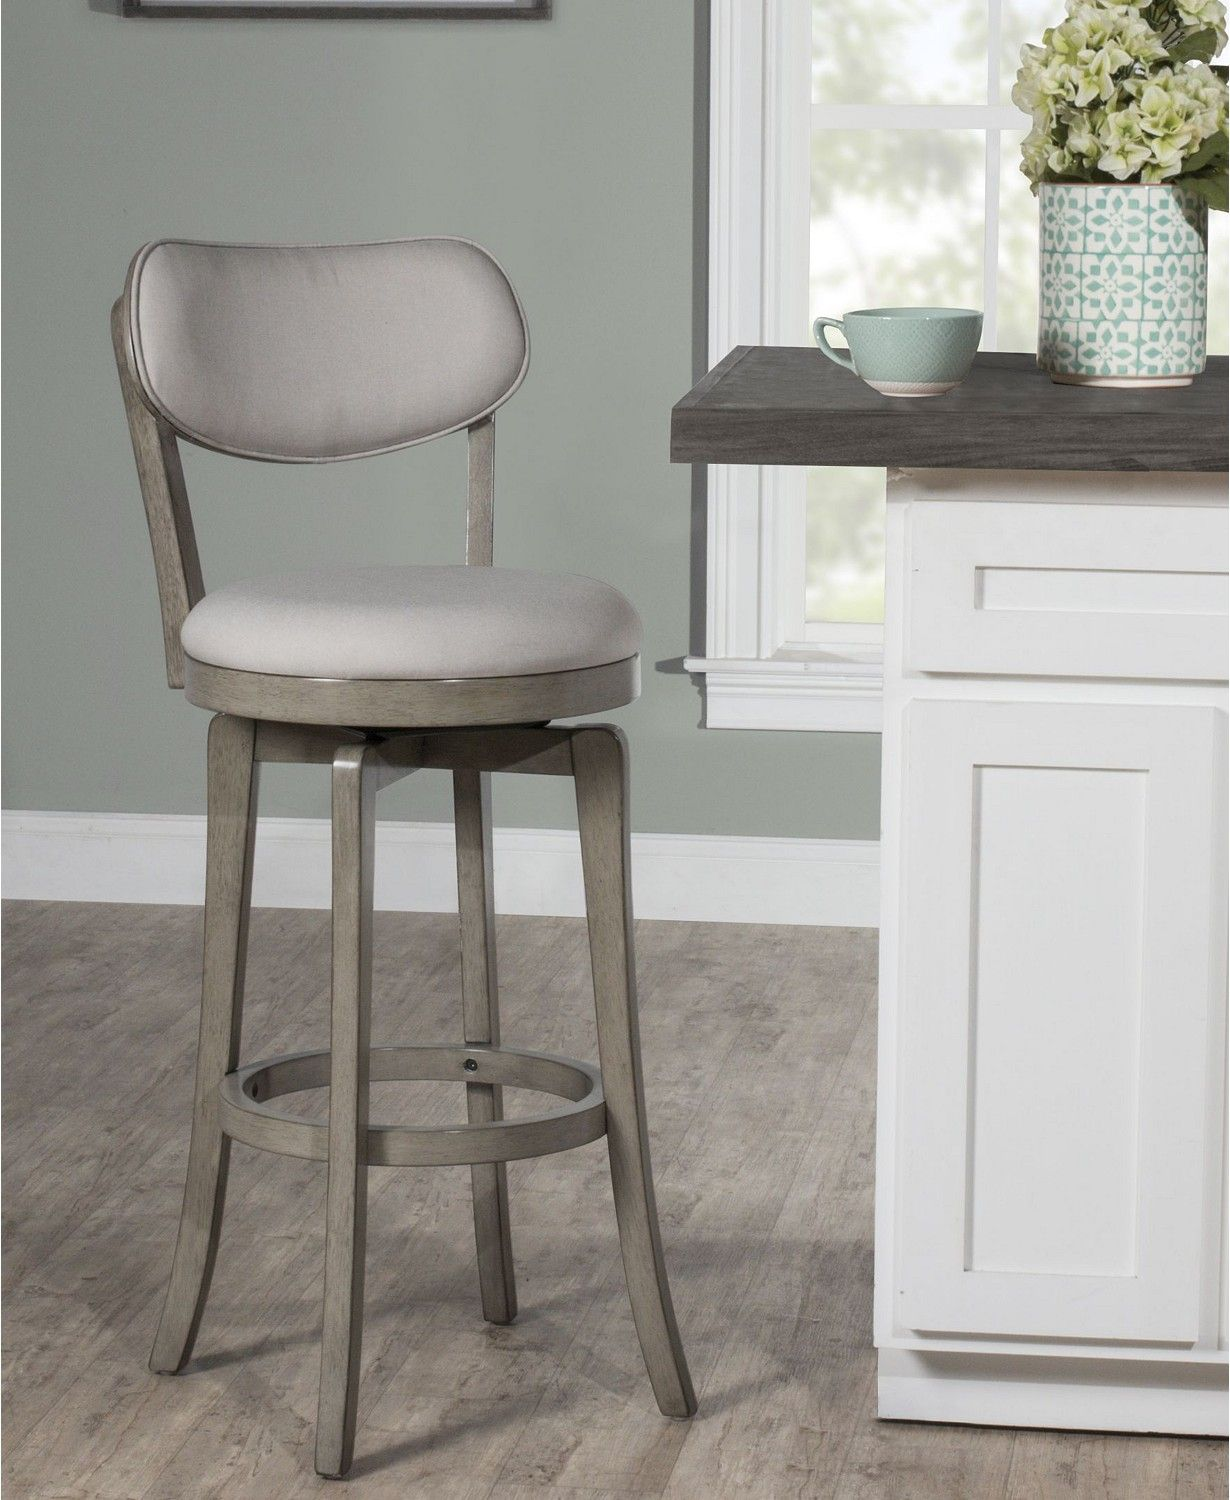 Hillsdale Sloan Swivel Counter Height Stool & Reviews   Furniture ...